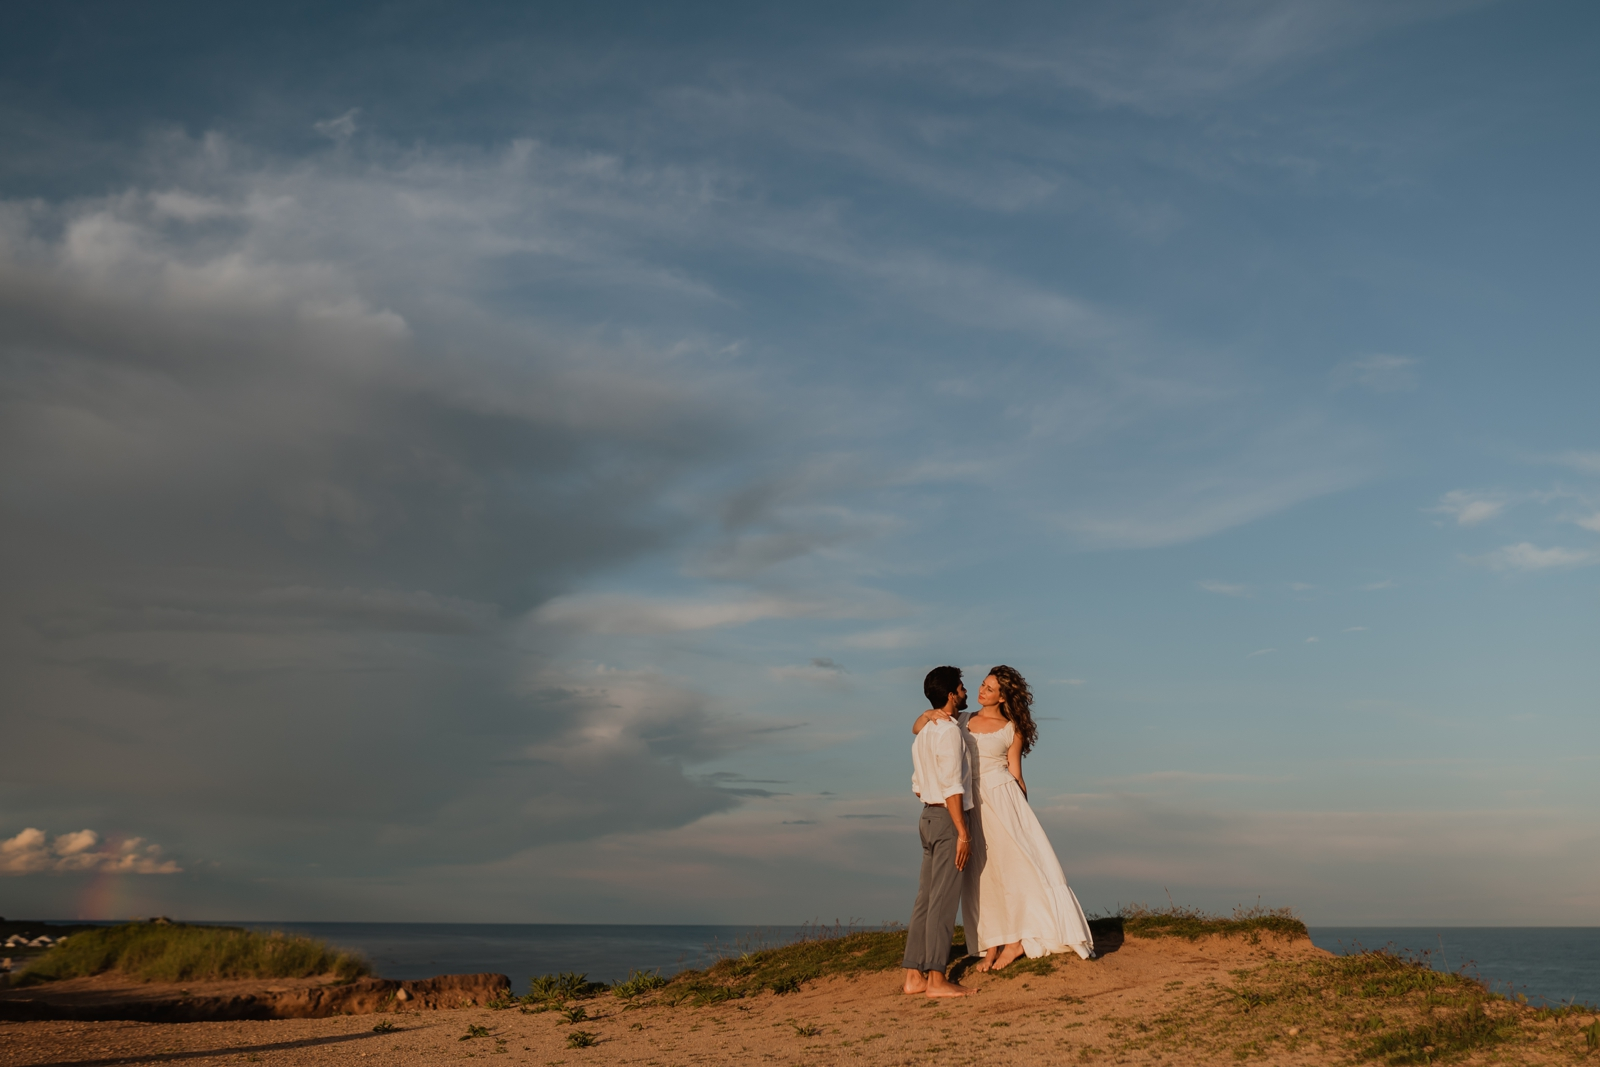 JJP_Nikki & Bud_Shadmoor_Montauk_NY_Cliff Engagement Session67.jpg_blog.jpg